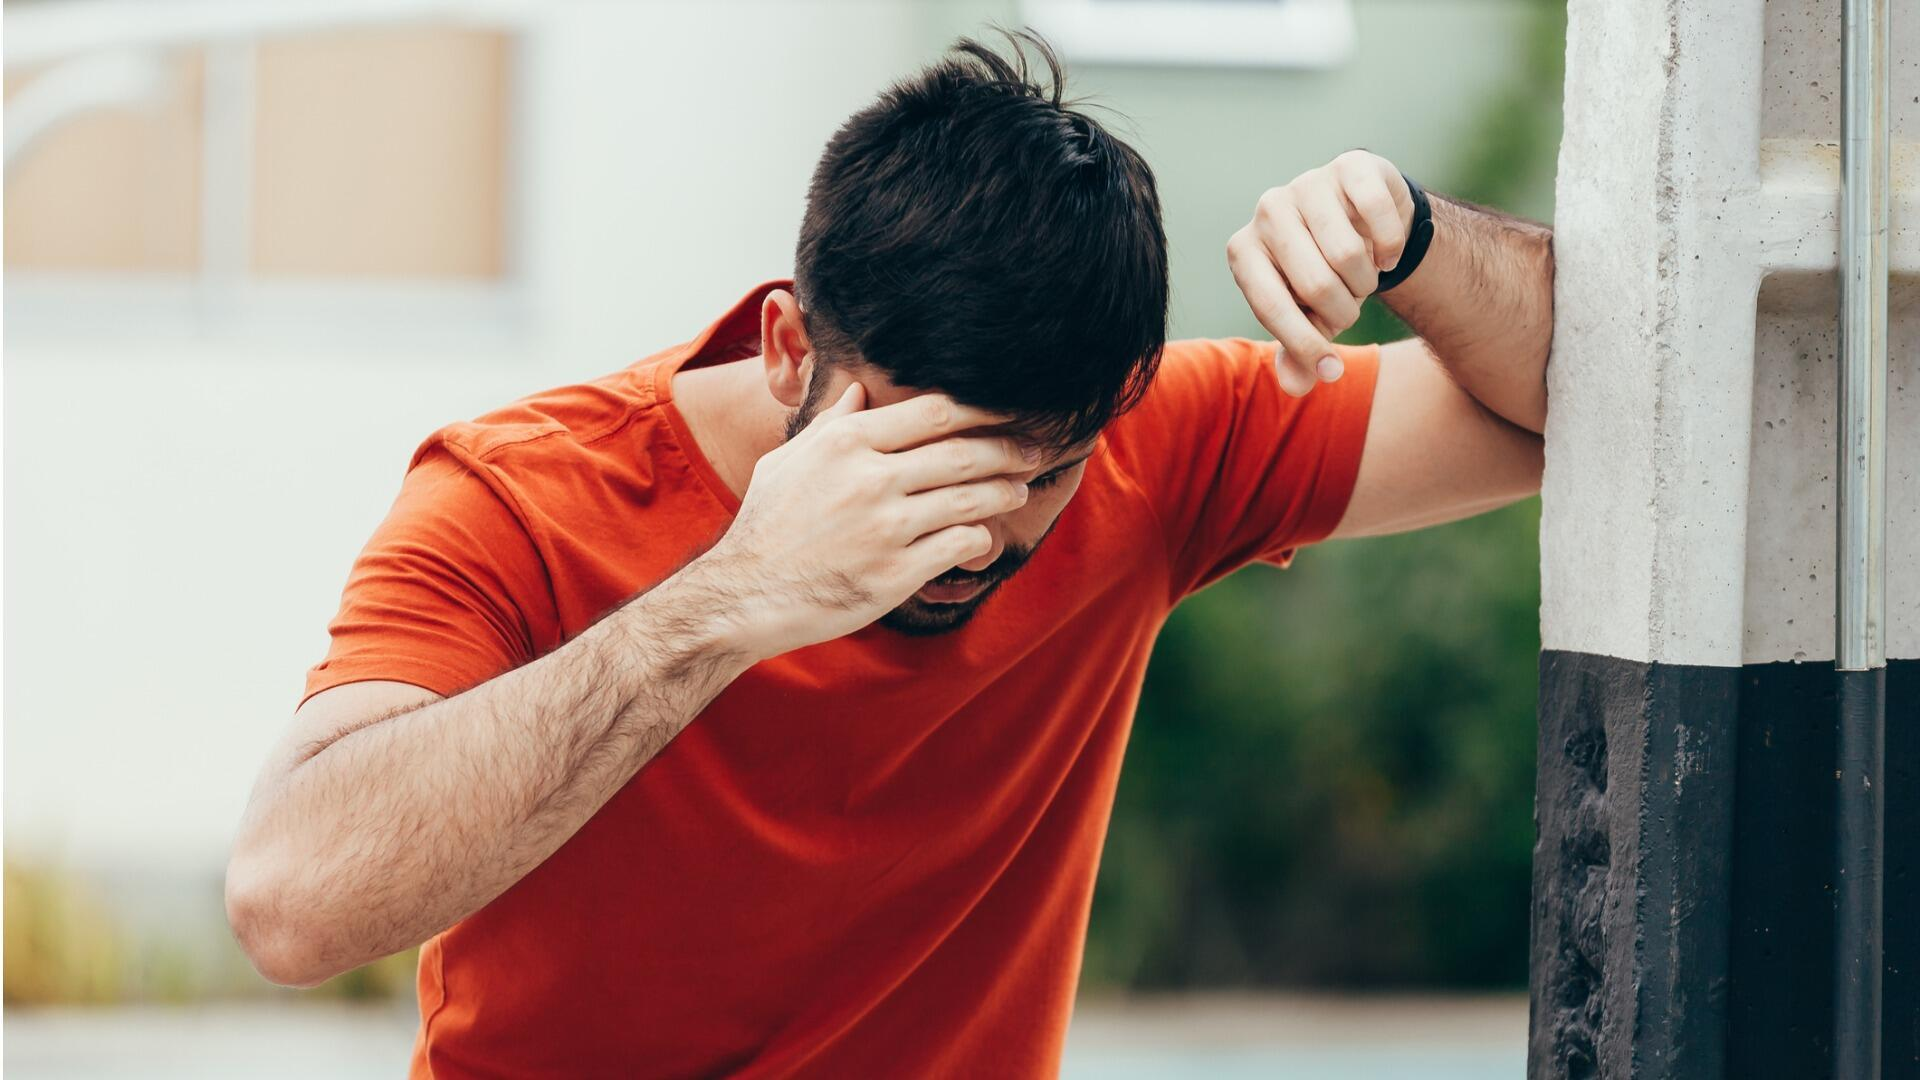 man-suffering-from-dizziness-with-difficulty-standing-up-while-on-picture-id1019539142